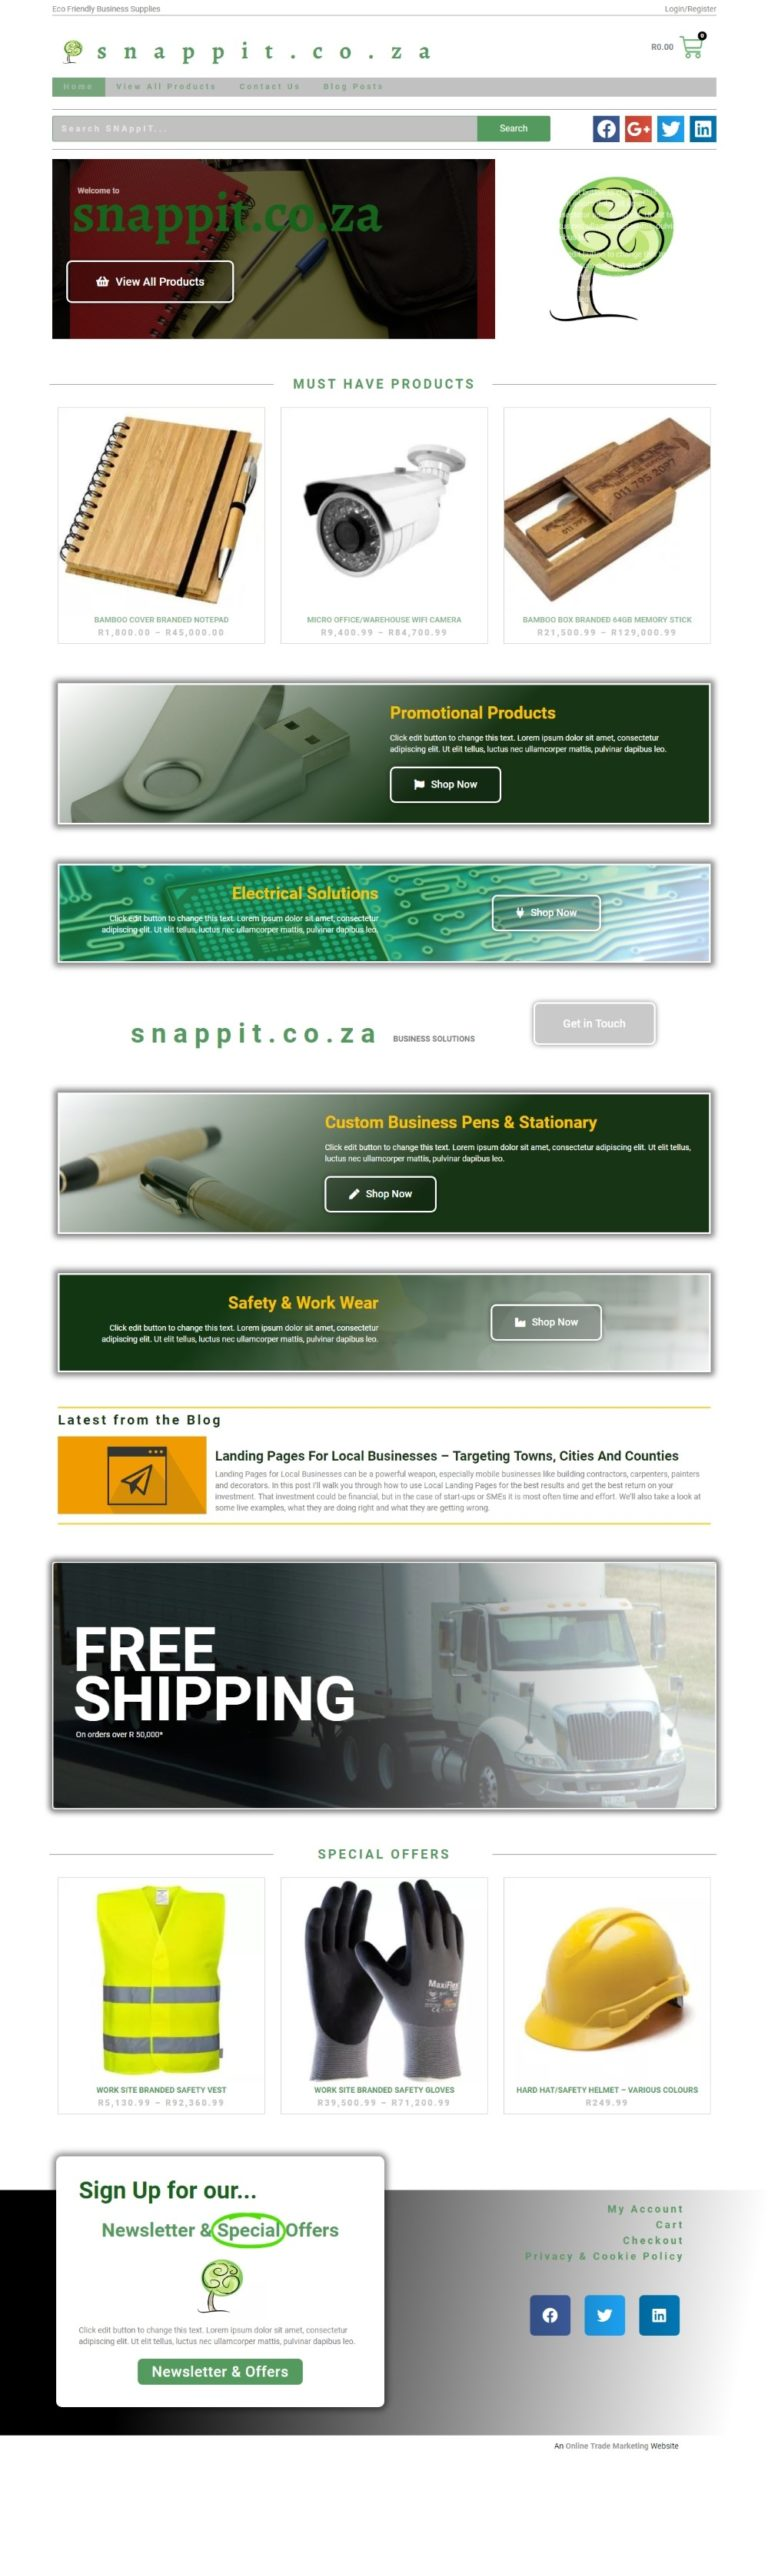 E-Commerce Homepage Design of Snappit